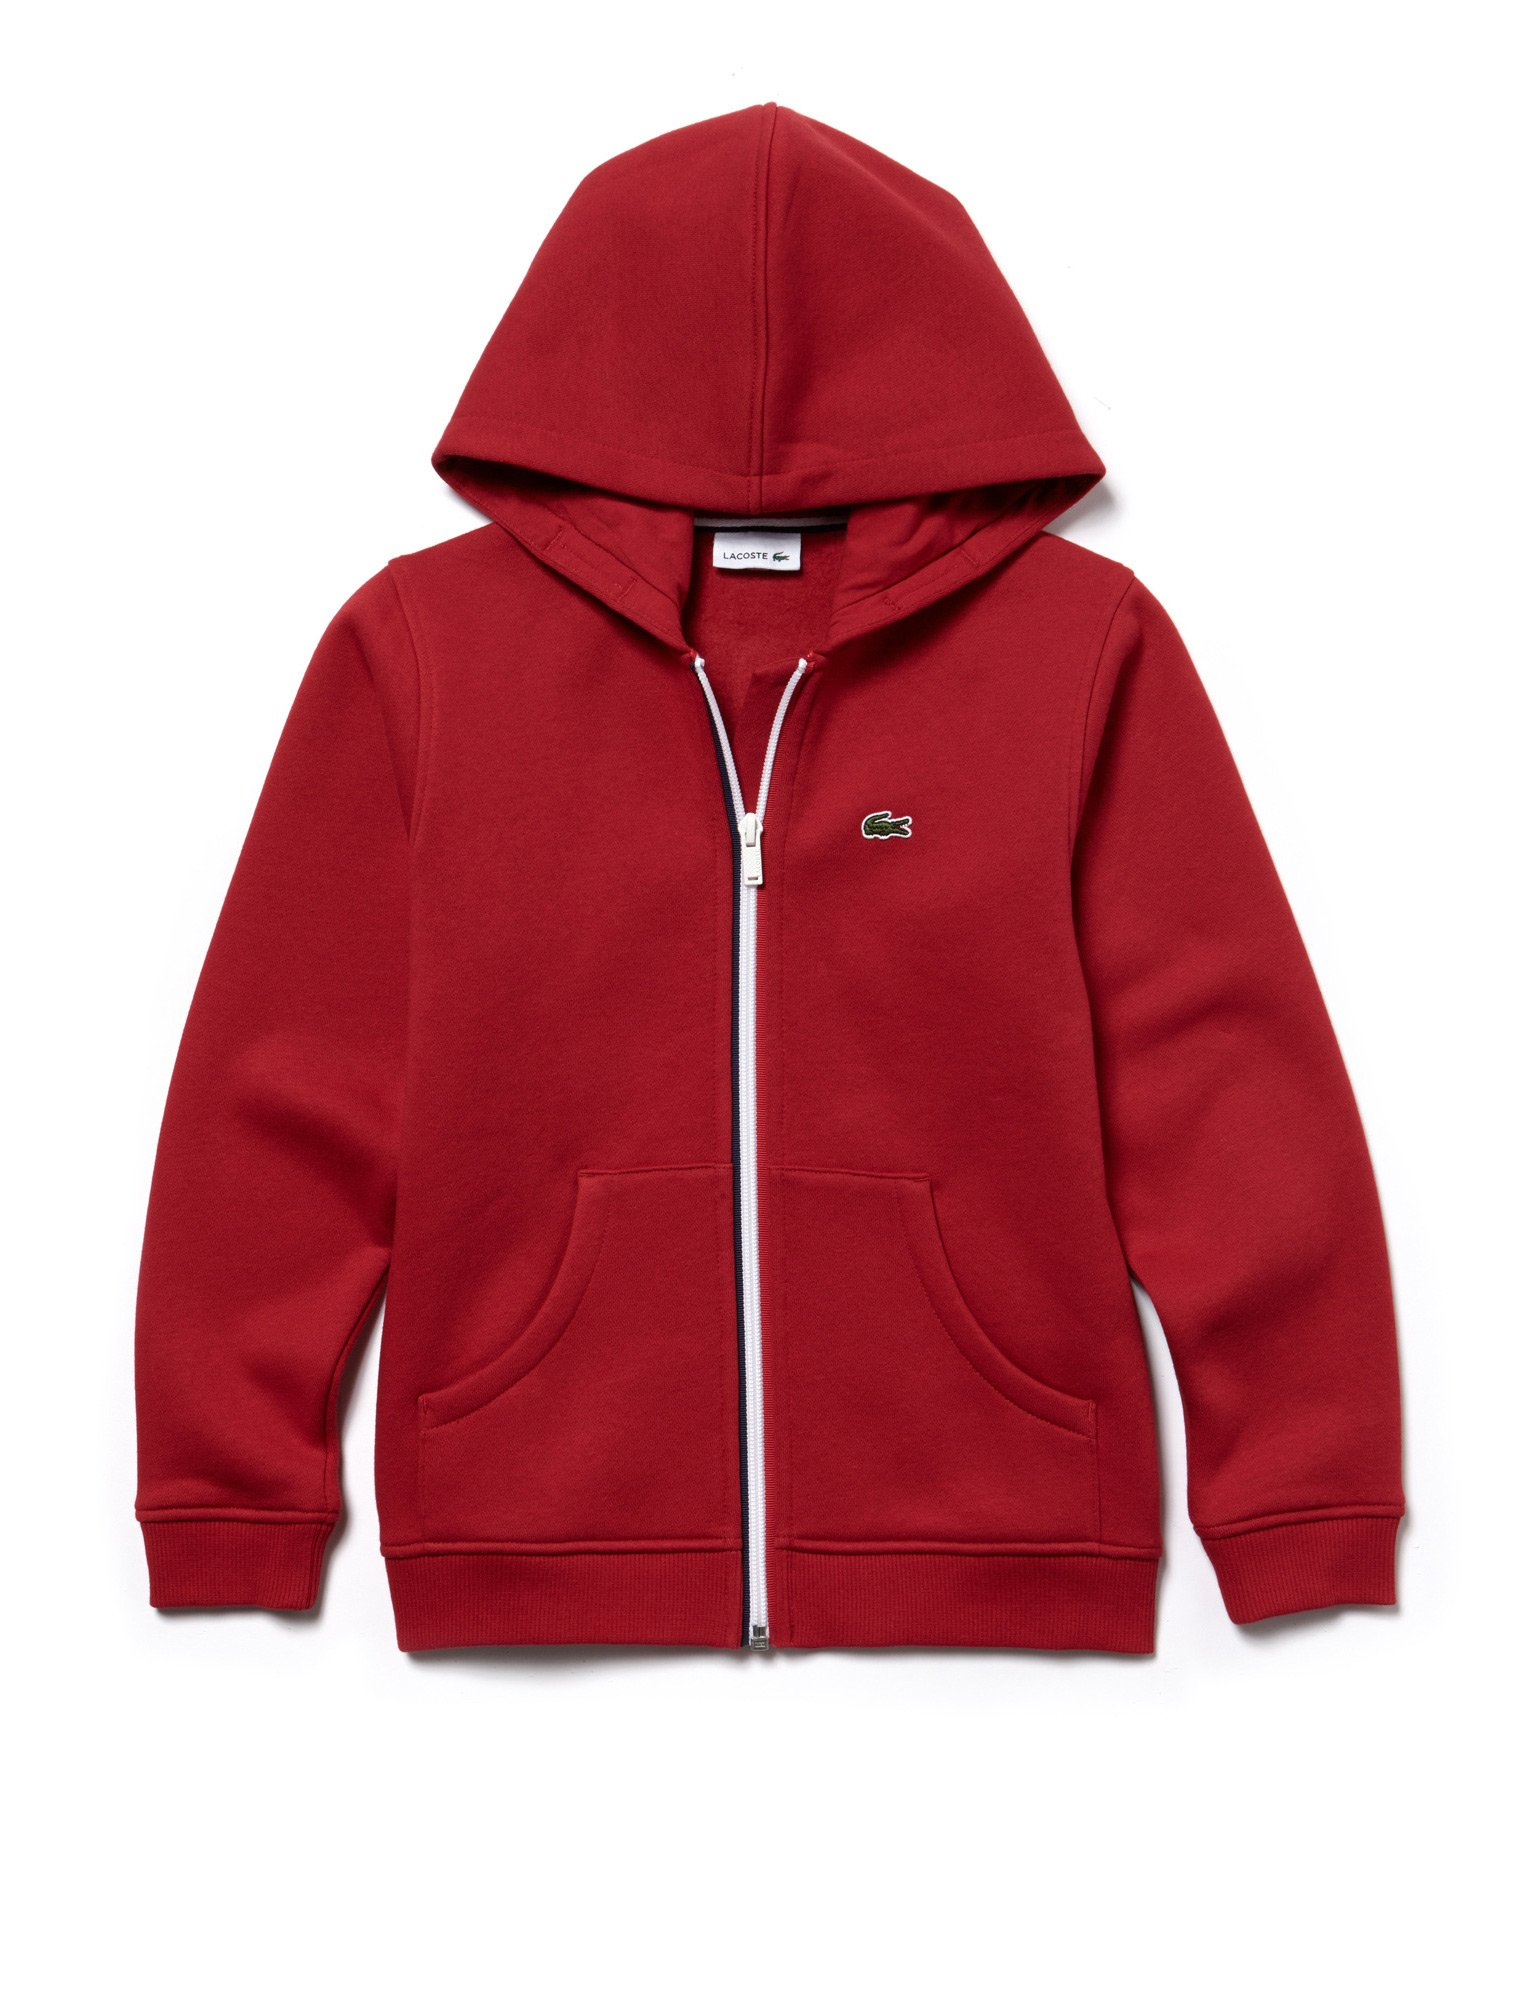 Lacoste Boy's Red Zip Up Fleece Hoodie in Size 16 Years (176 cm) Red by Lacoste